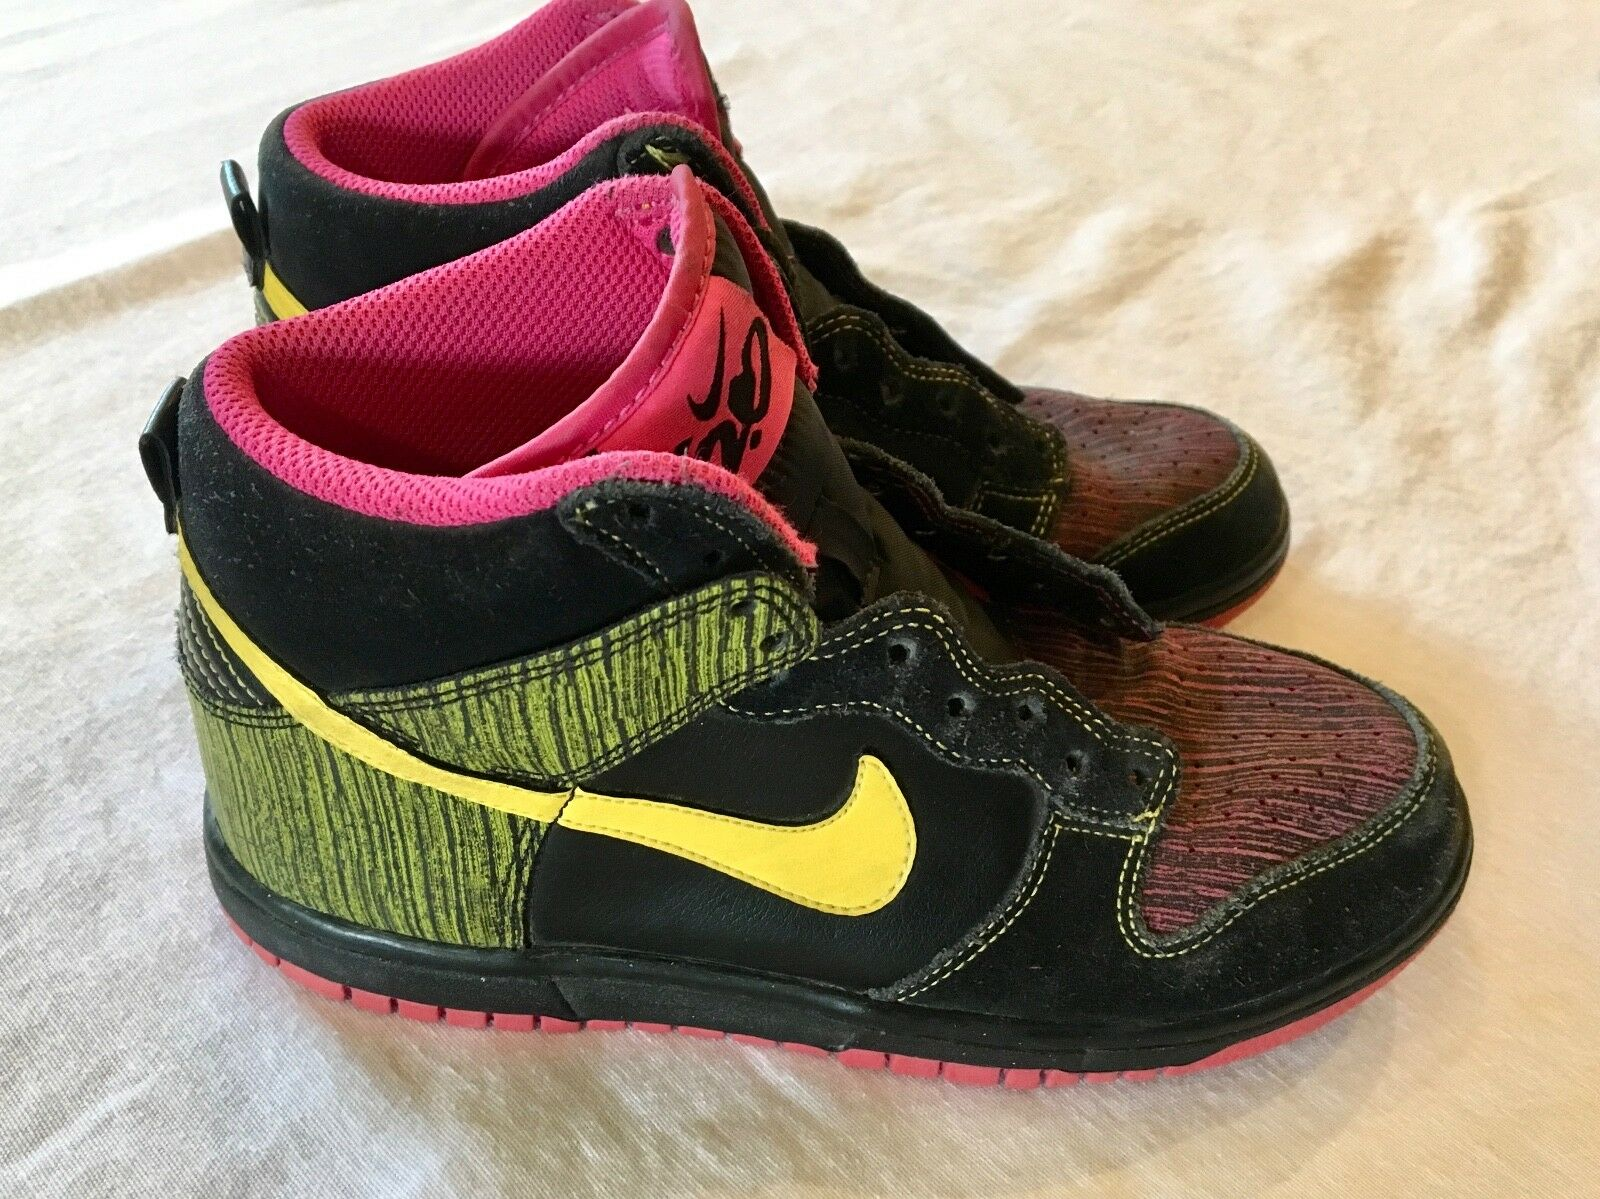 Nike Dunk High 6.0 Multi colord Women's Sneakers